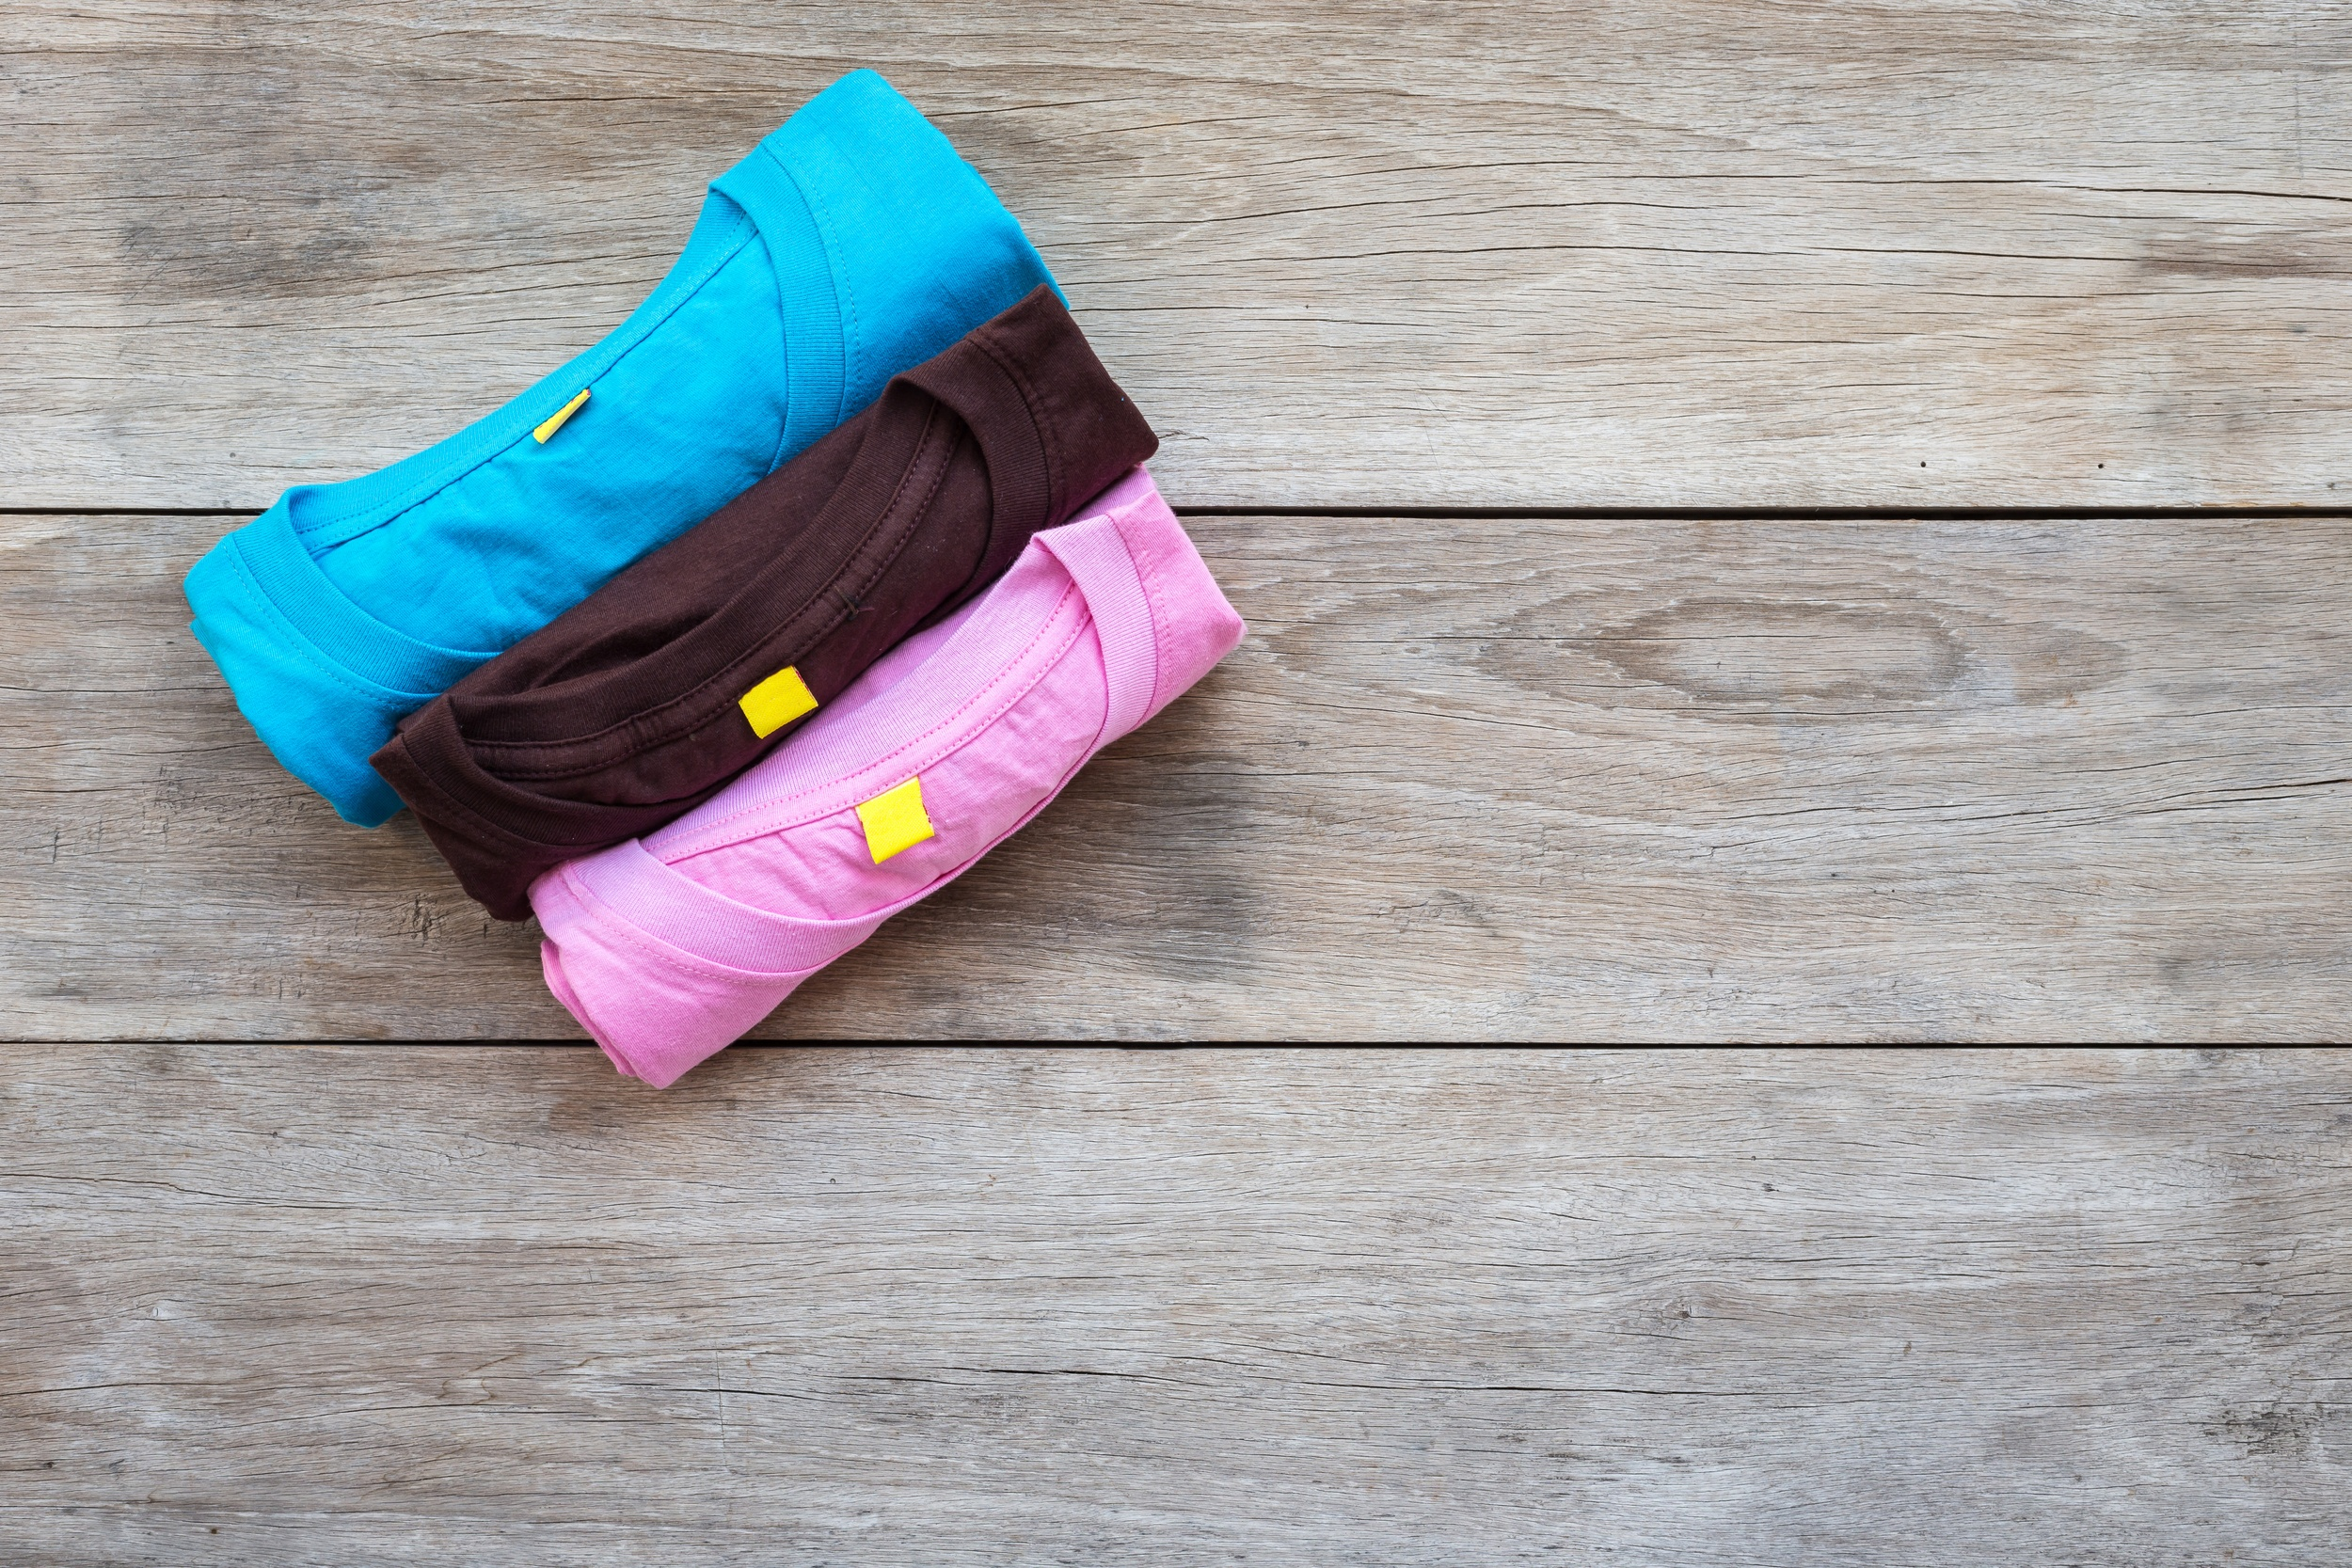 How To Pack a Backpack With Clothes